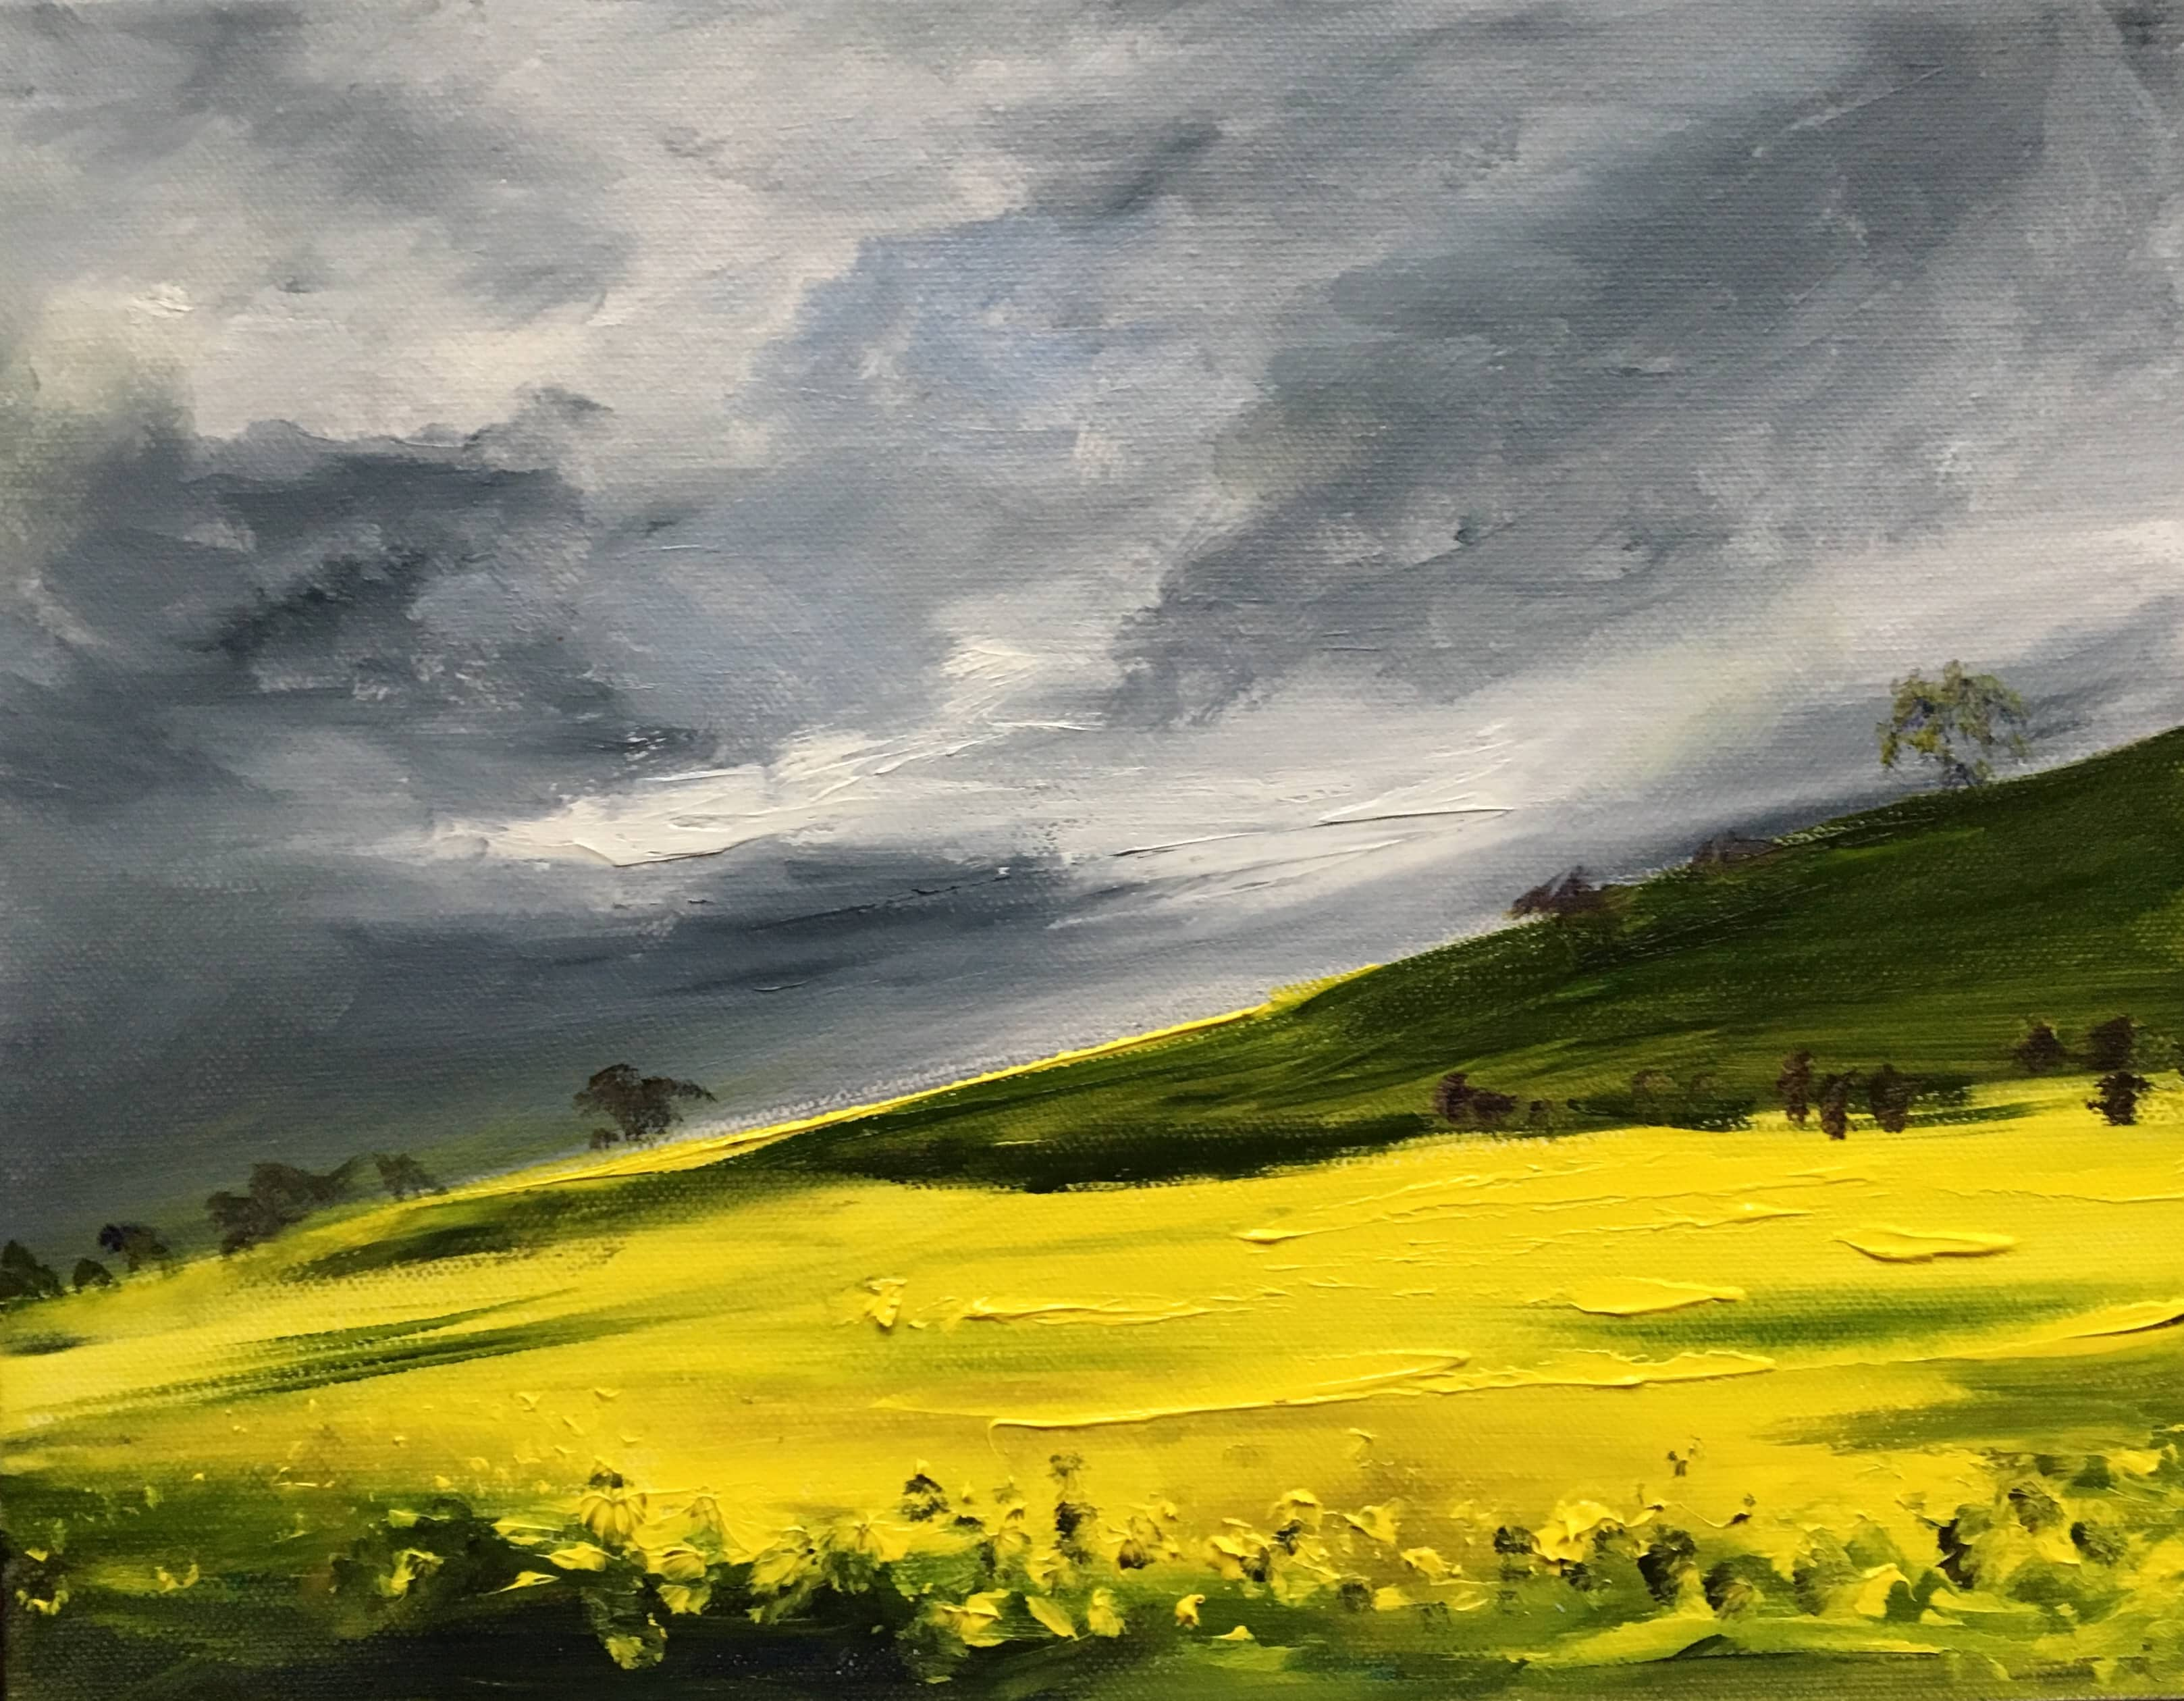 oil painting landscape yellow and grey oil seed rape field grey clouds